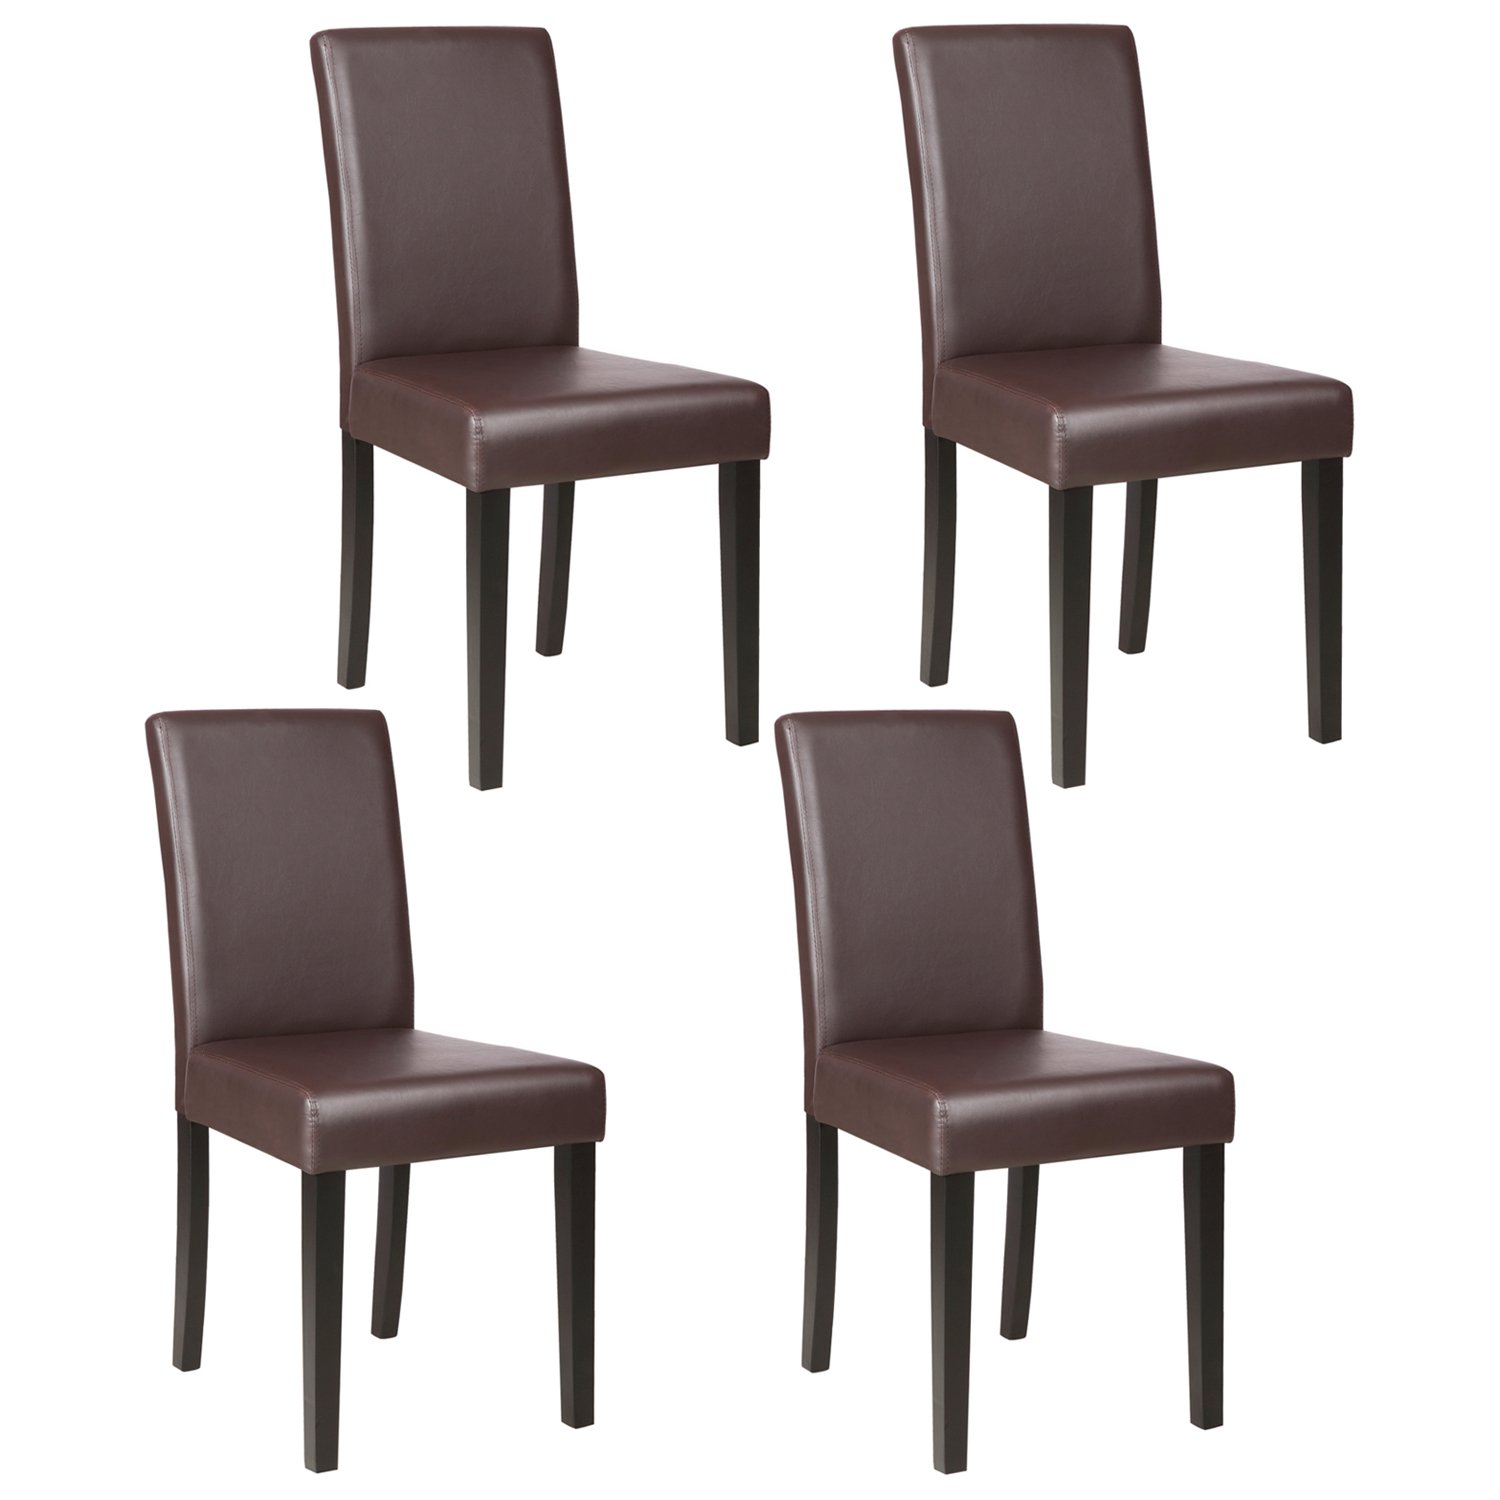 Mecor Dining Chairs Set of 4, Kitchen Leather Padded Chair with Solid Wood Legs Dining Room Furniture Brown by mecor